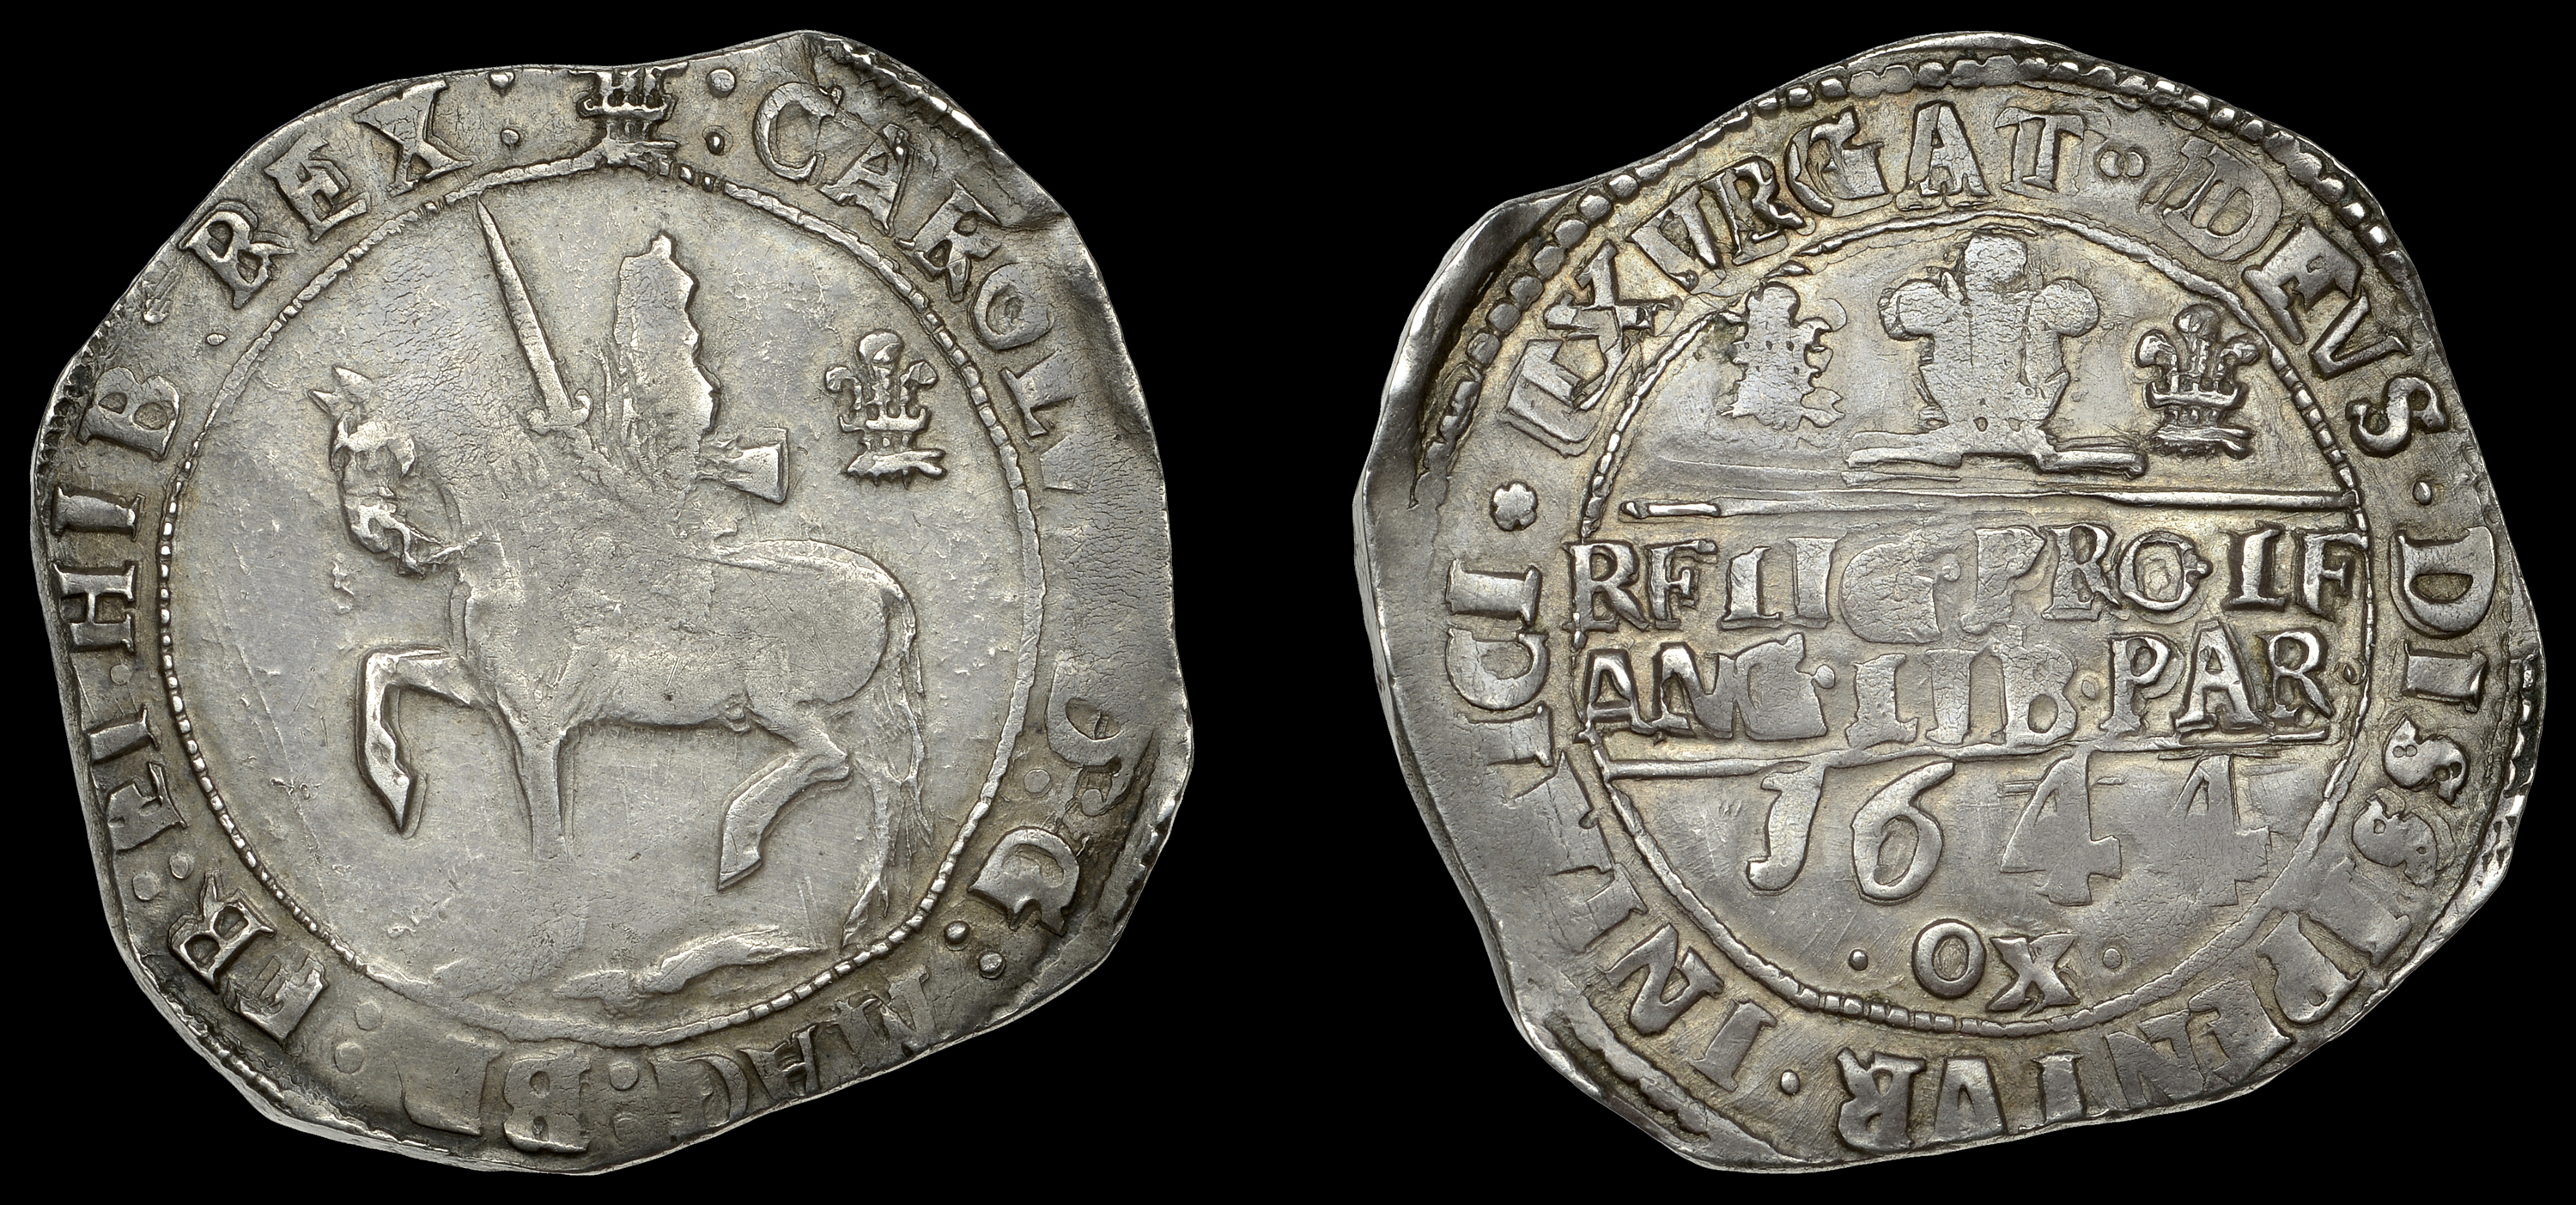 Lot 40 - The Collection of British Coins Formed by the Late Ray Inder (Part IV)